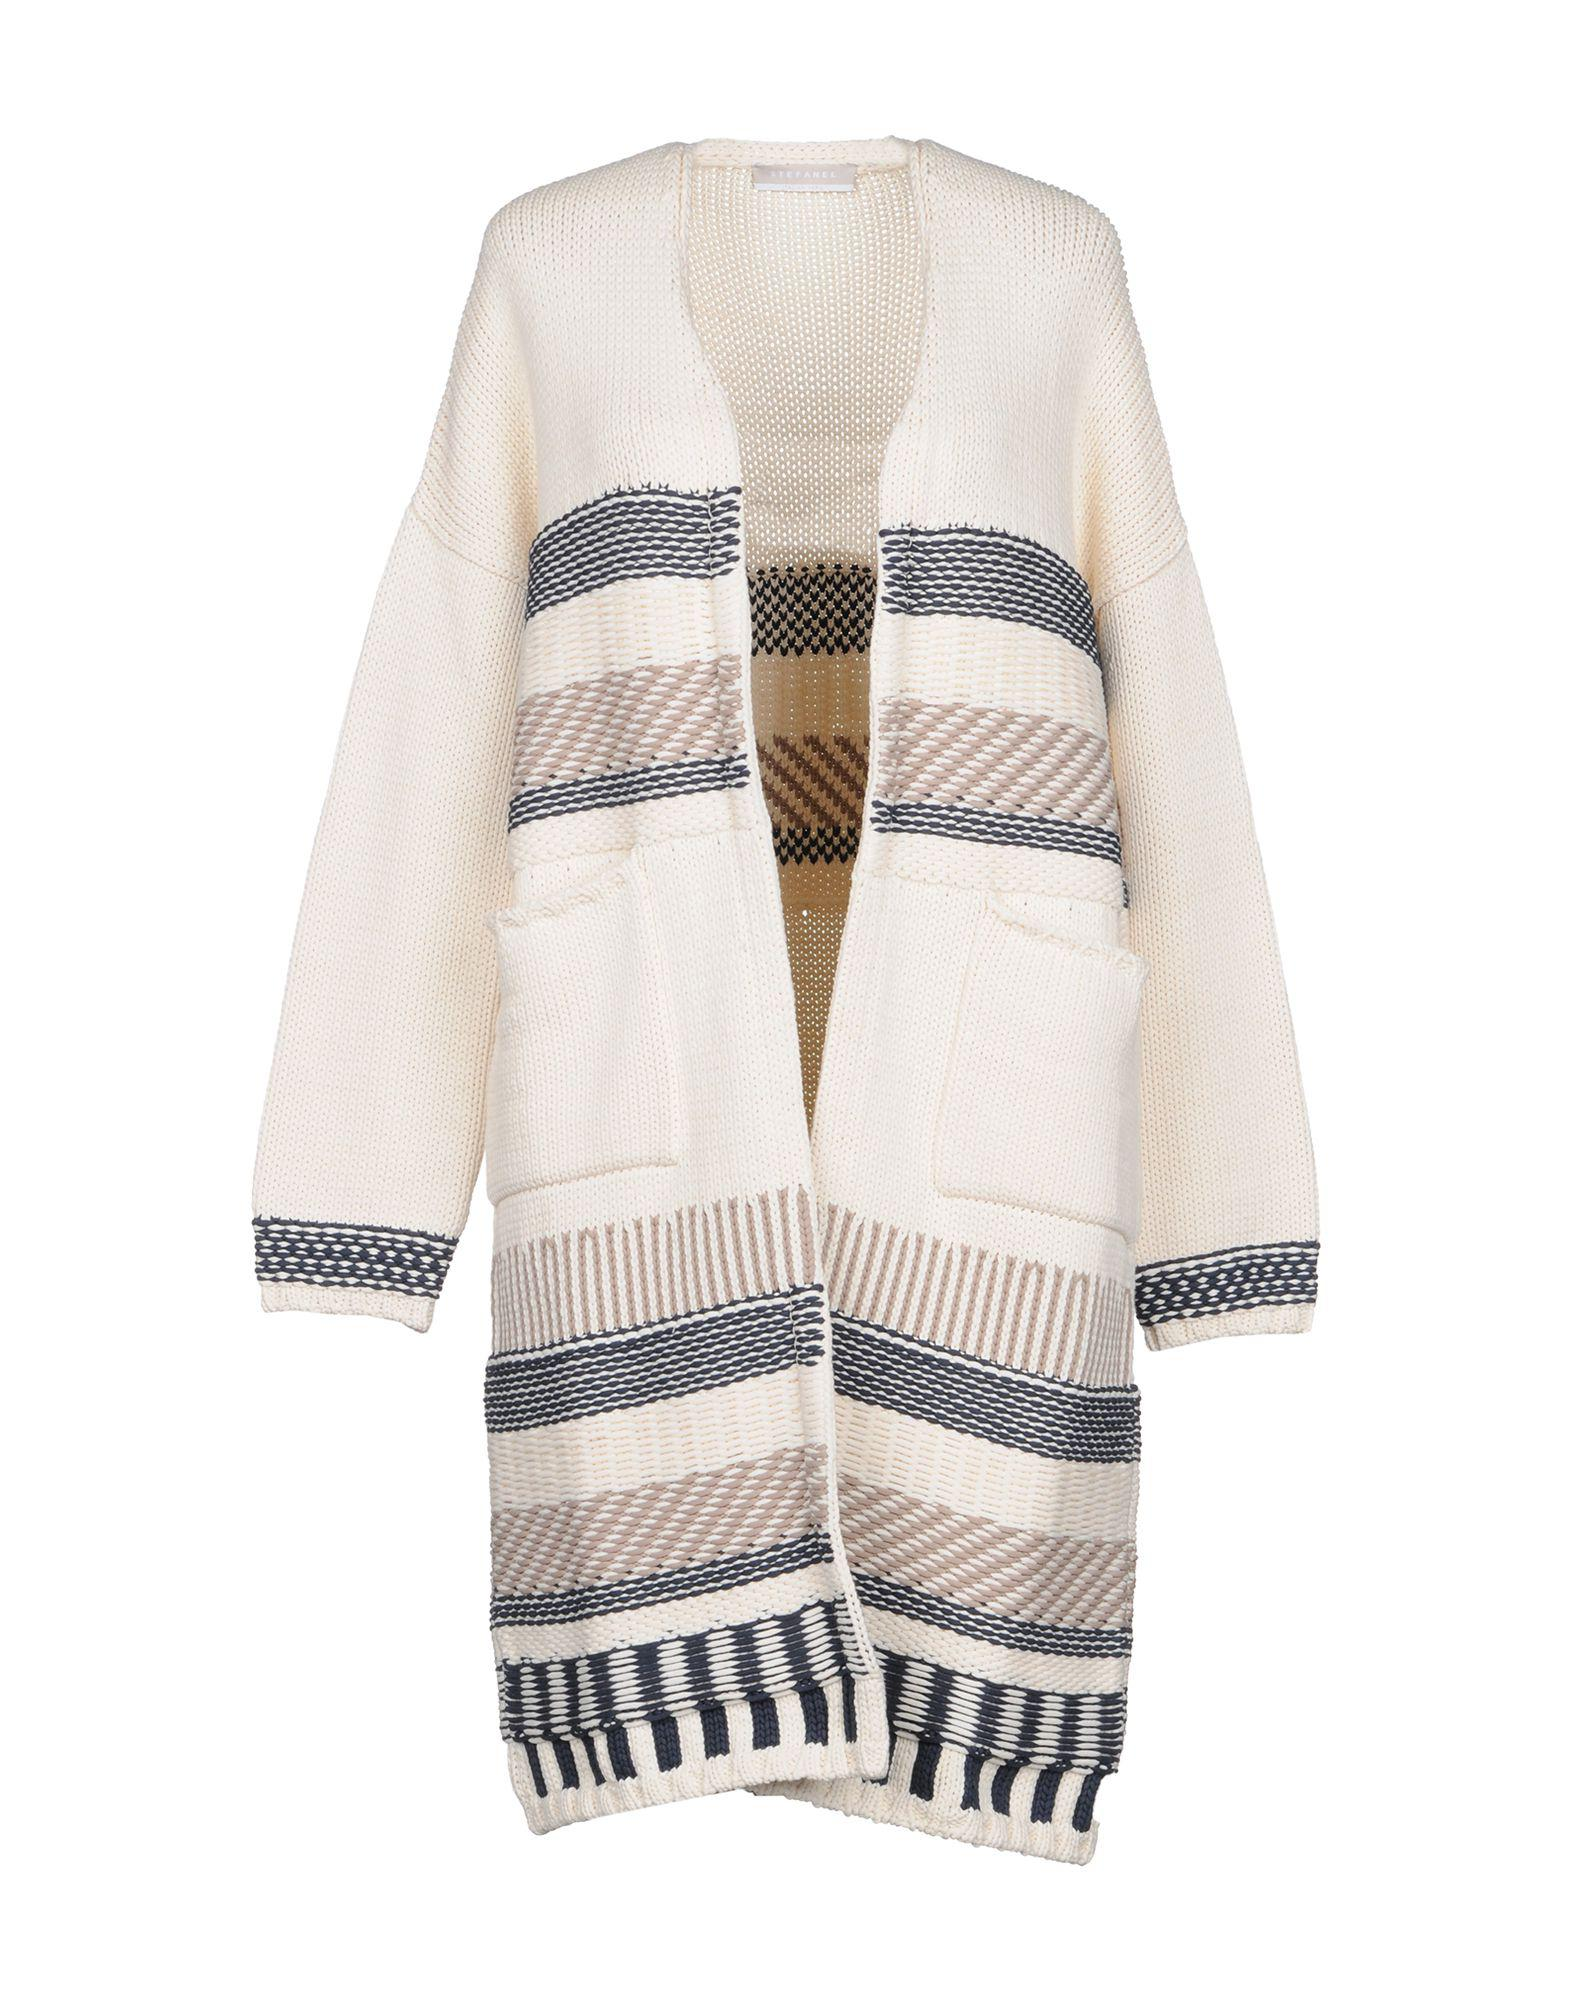 5f593a2245932 Stefanel Cardigan in White - Lyst